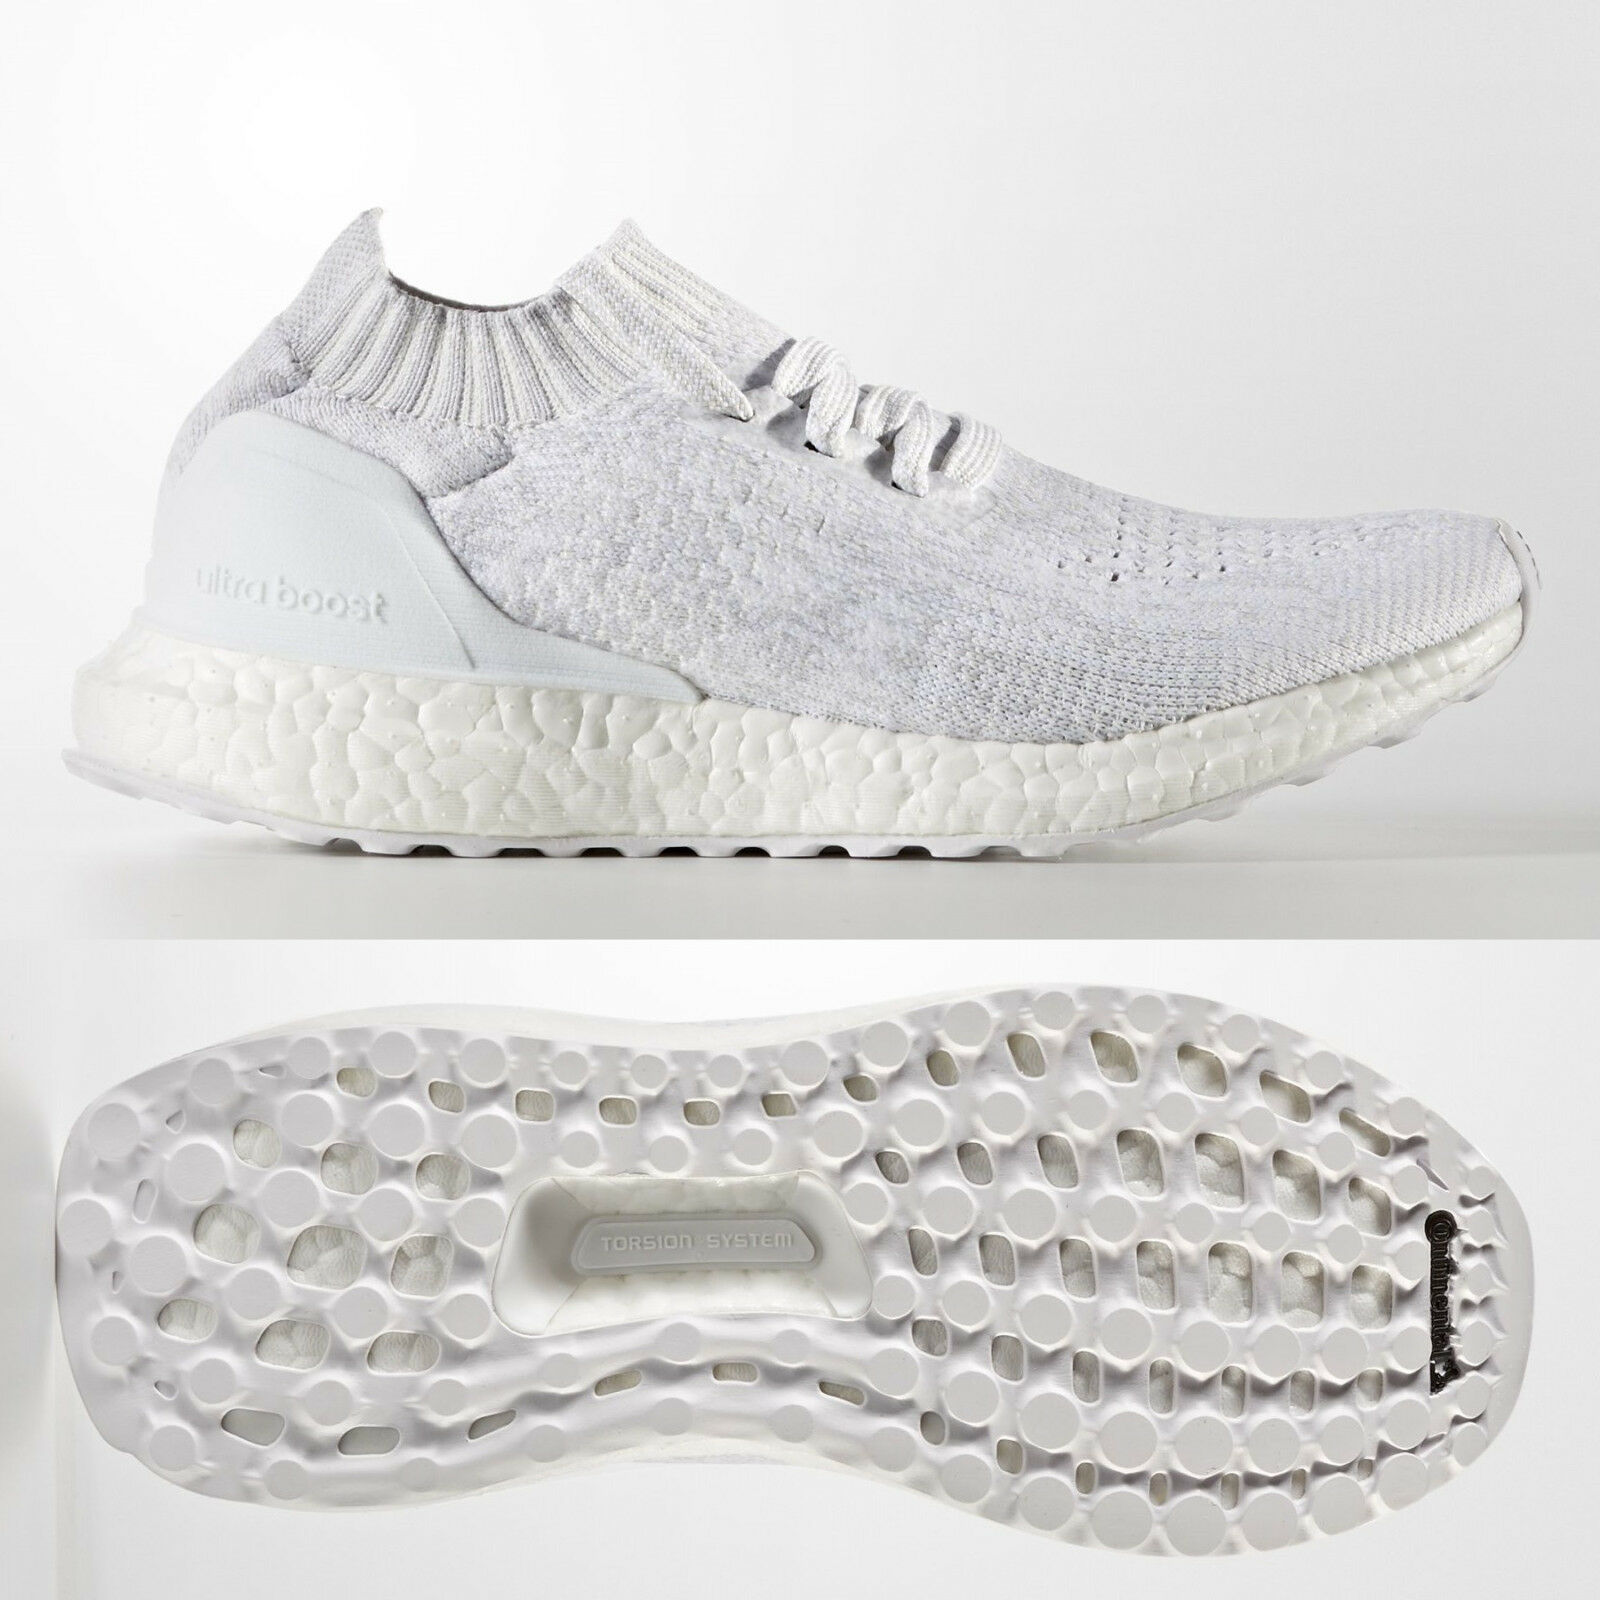 2ba604bfcae6d Adidas UltraBOOST Uncaged Junior shoes White BY2079 Kids Ultra Boost 3-6  Running ofdyhc10002-Youth